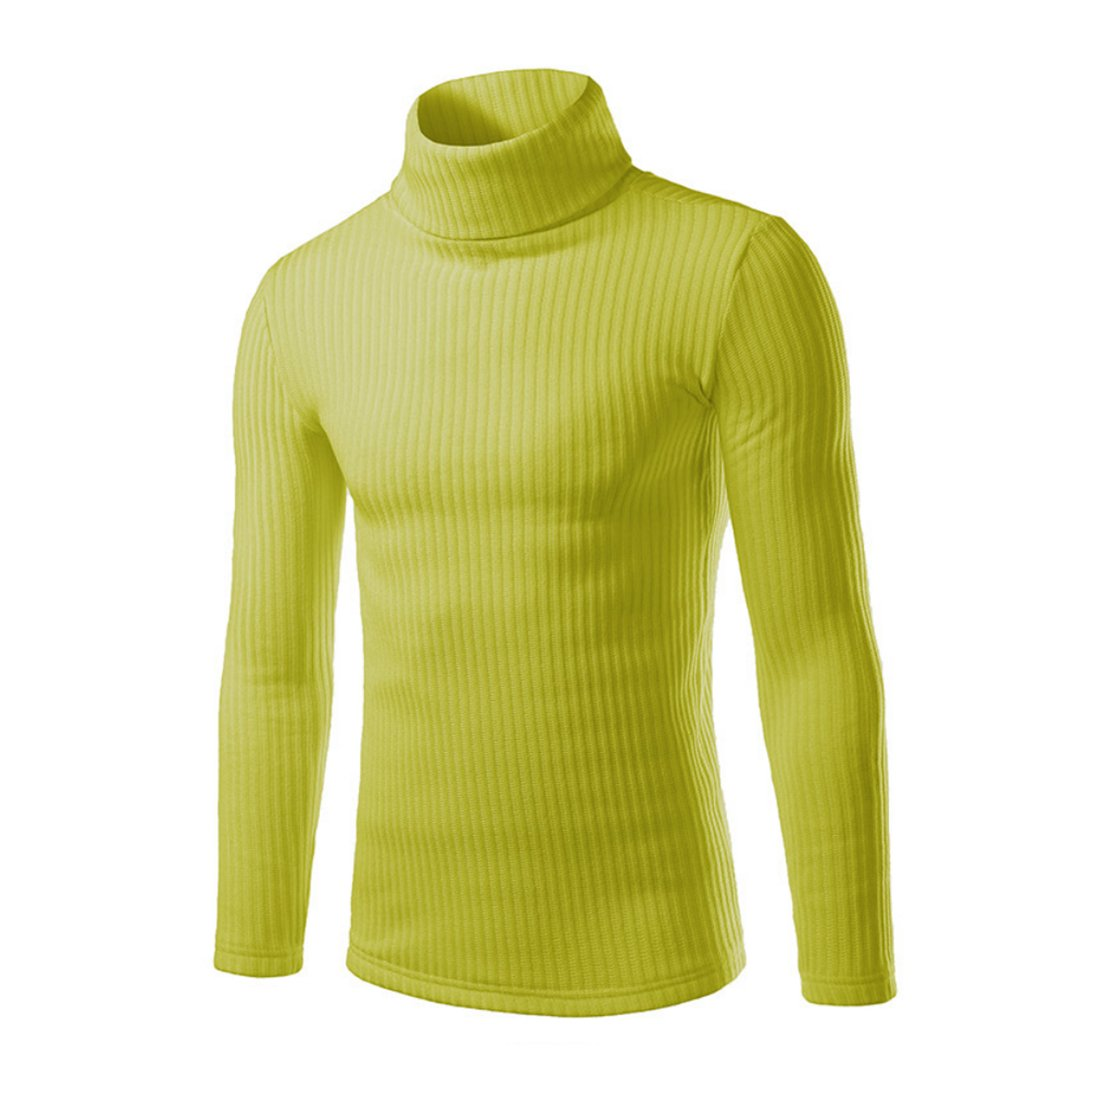 Mada Men S Turtle Neck Slim Fit Knitted Buy Online In Papua New Guinea At Desertcart Contribute to mada20/edjumpilot development by creating an account on github. desertcart